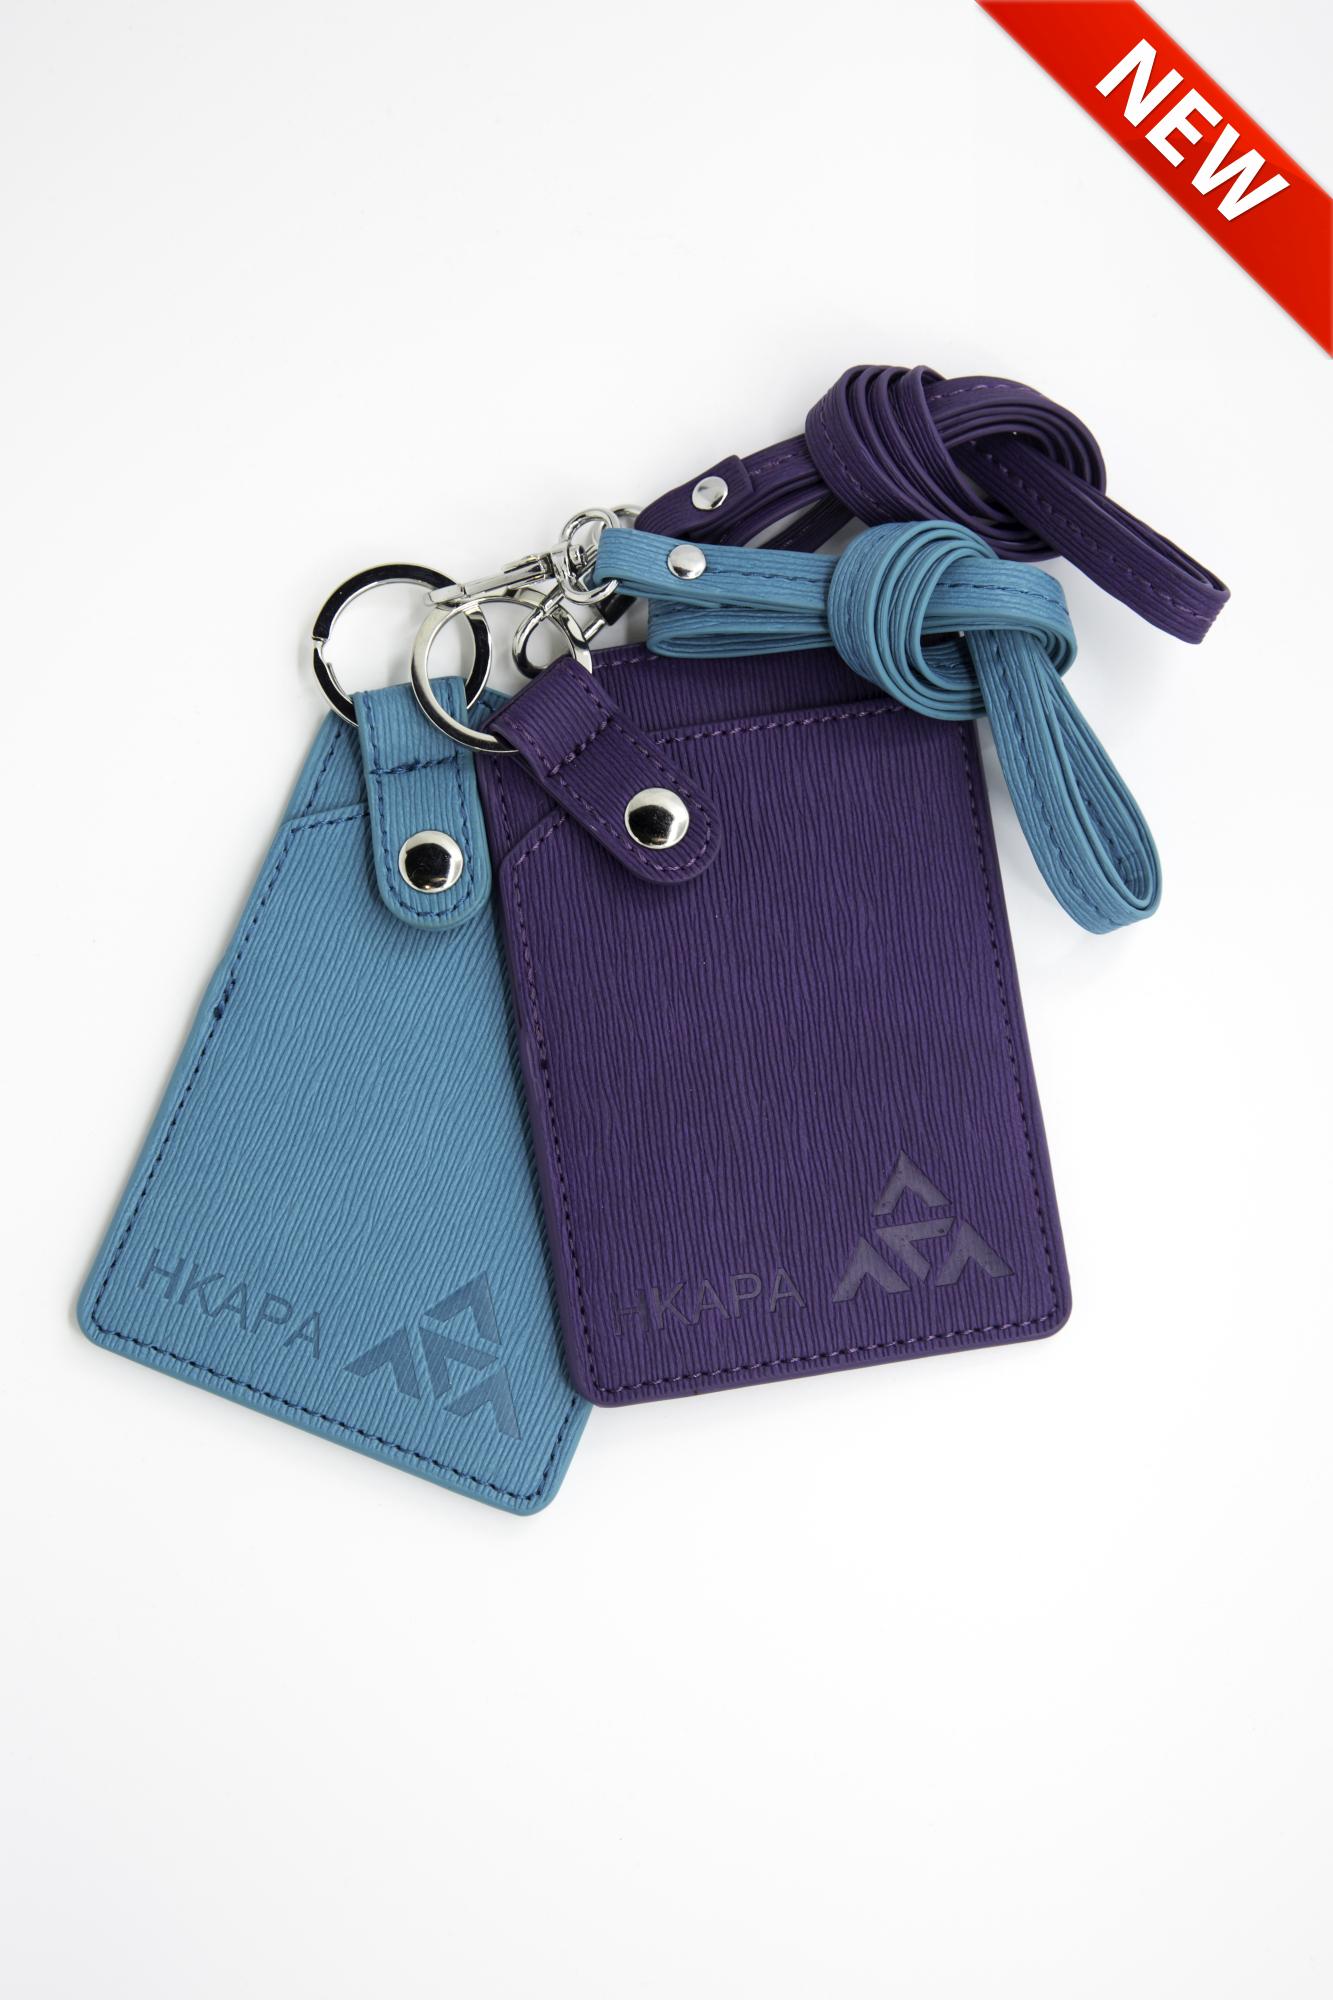 Badge Holder with Flat Lanyard (Purple/Blue)